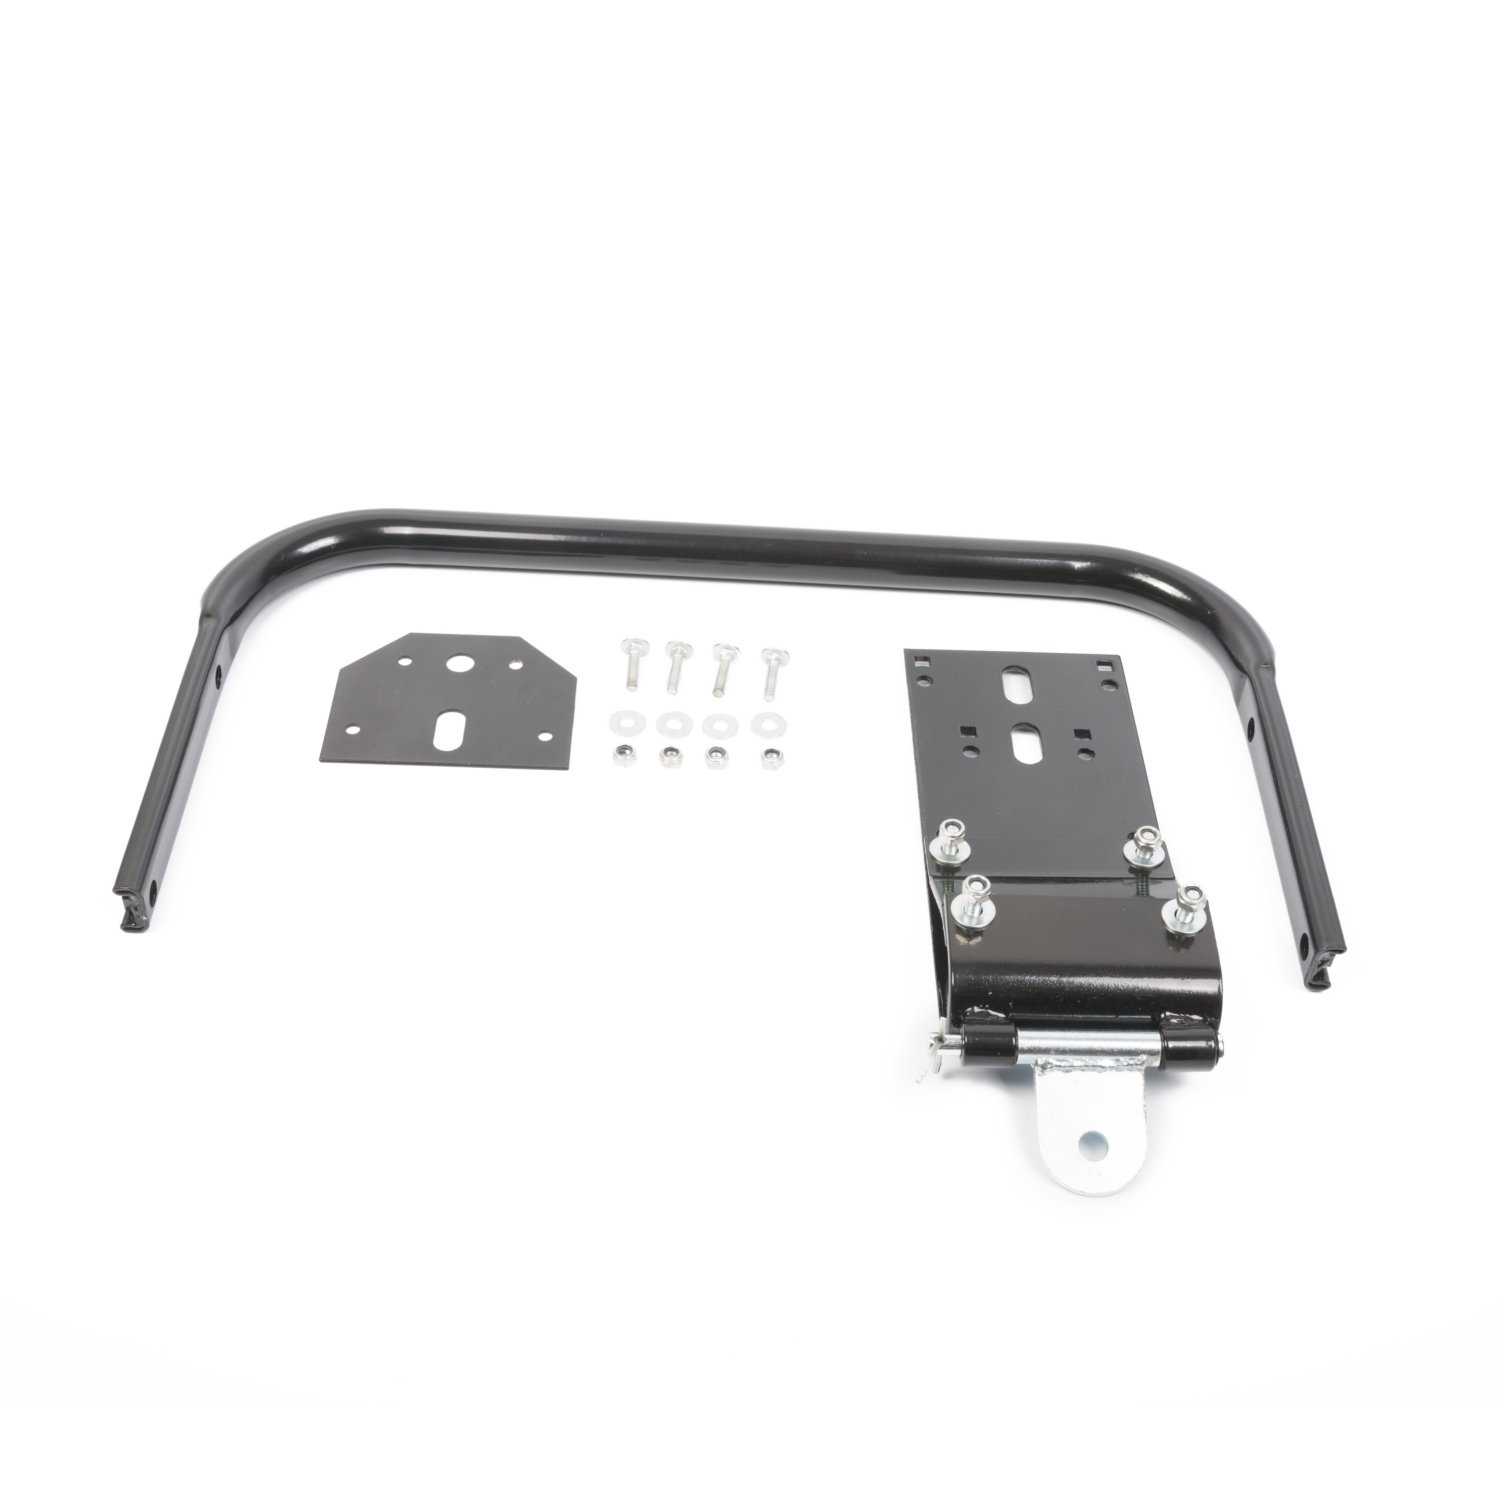 Kimpex Tow Hitch 12-104-02